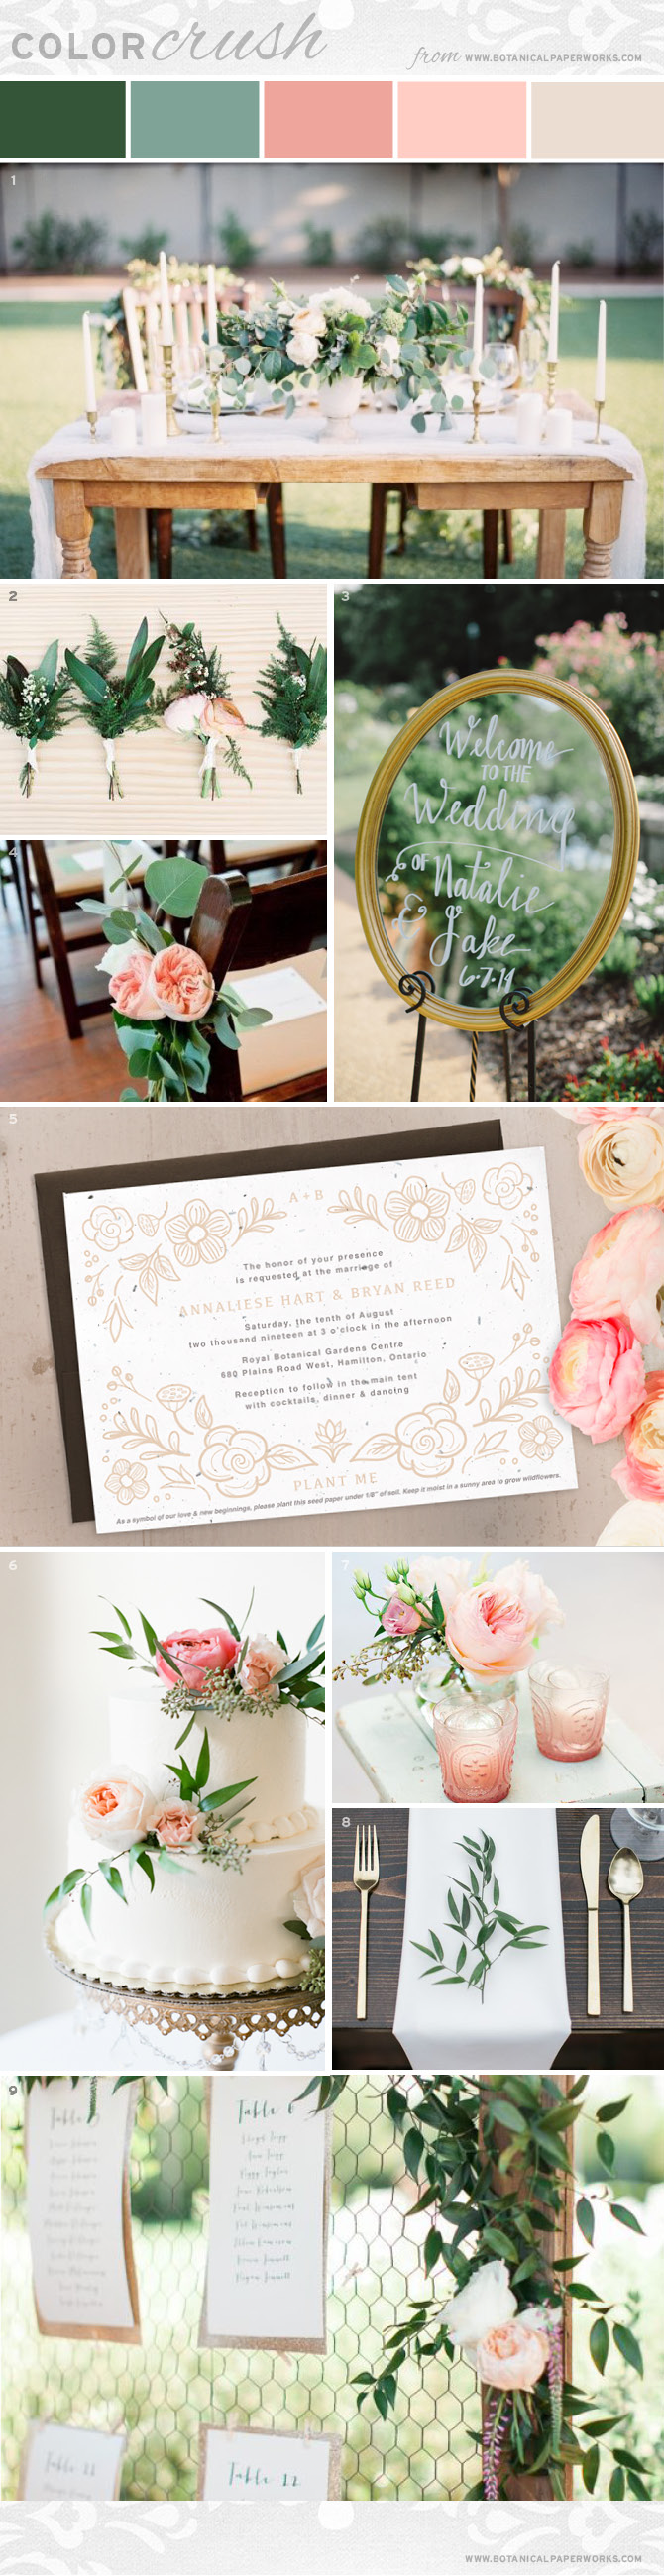 Get wedding inspiration for styling a romantic summer wedding with beautiful botanical details.